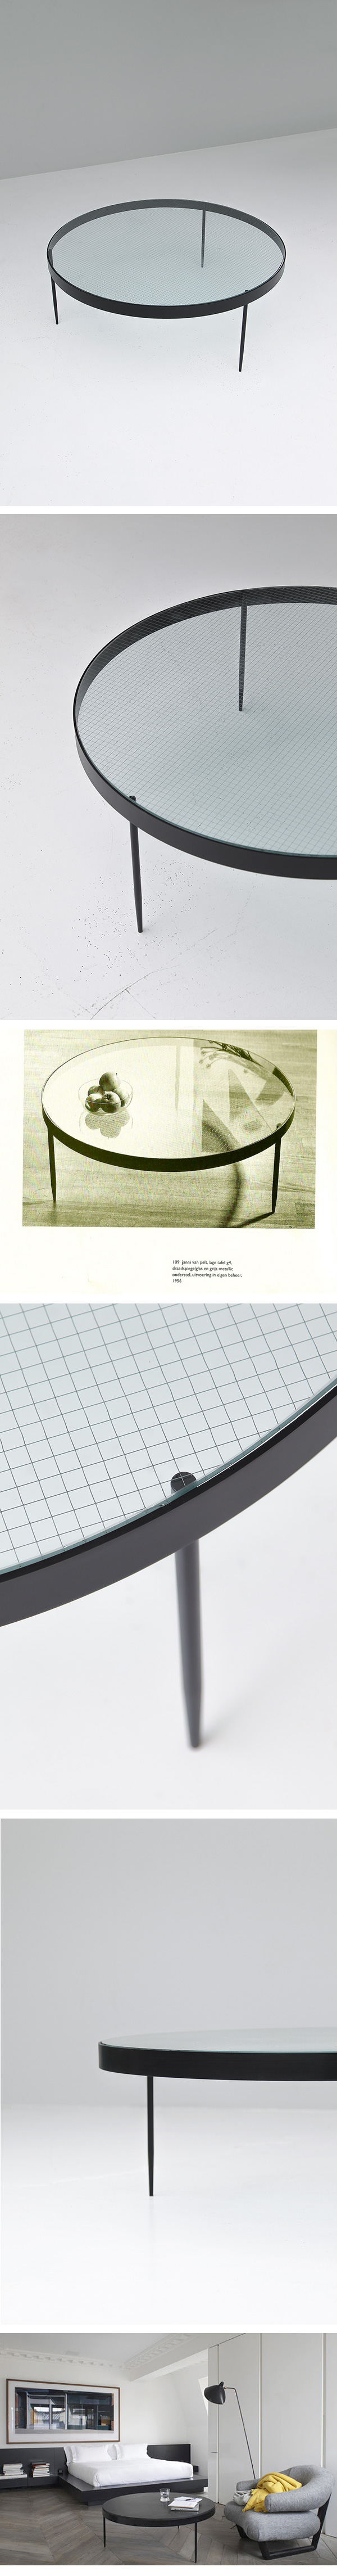 Jannie Van Pelt, coffee table, 1950s, modernist, dutch, design